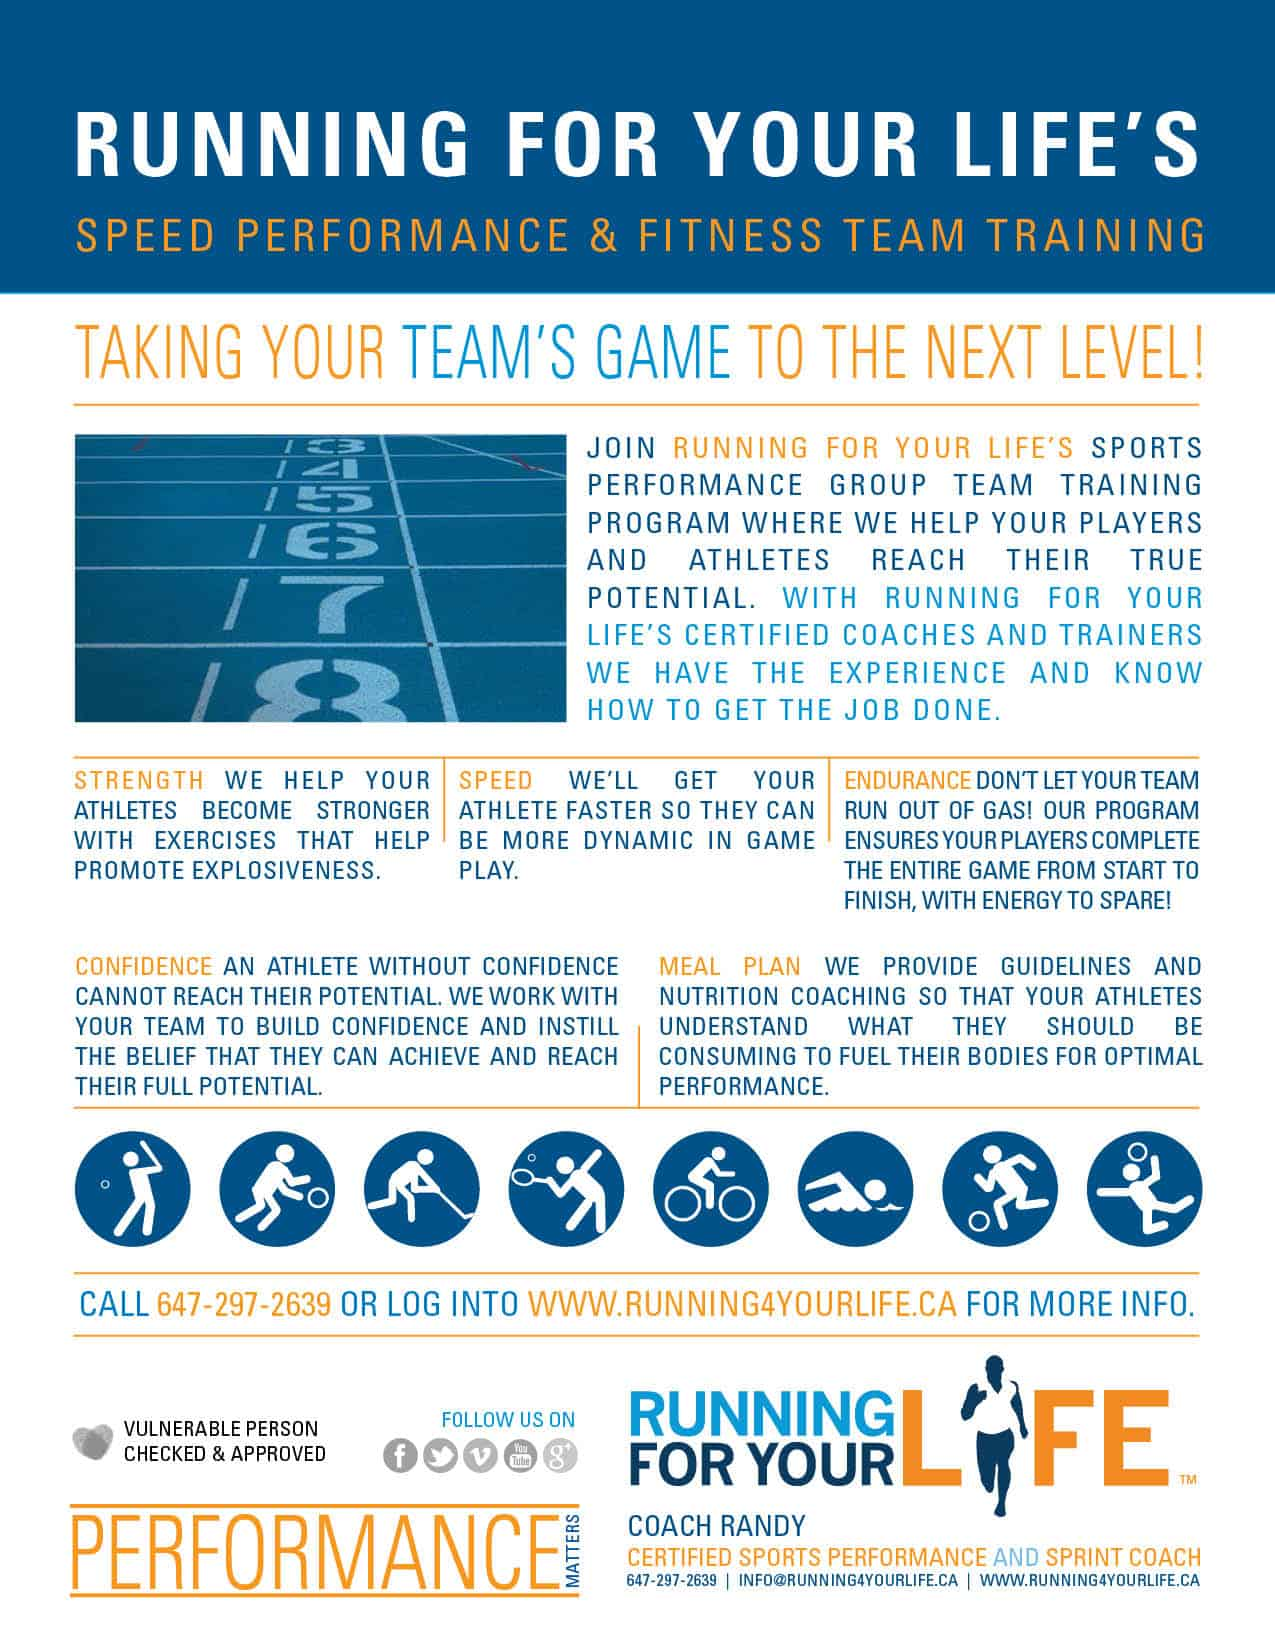 RFYL-Speed-Performance-Fitness-v3